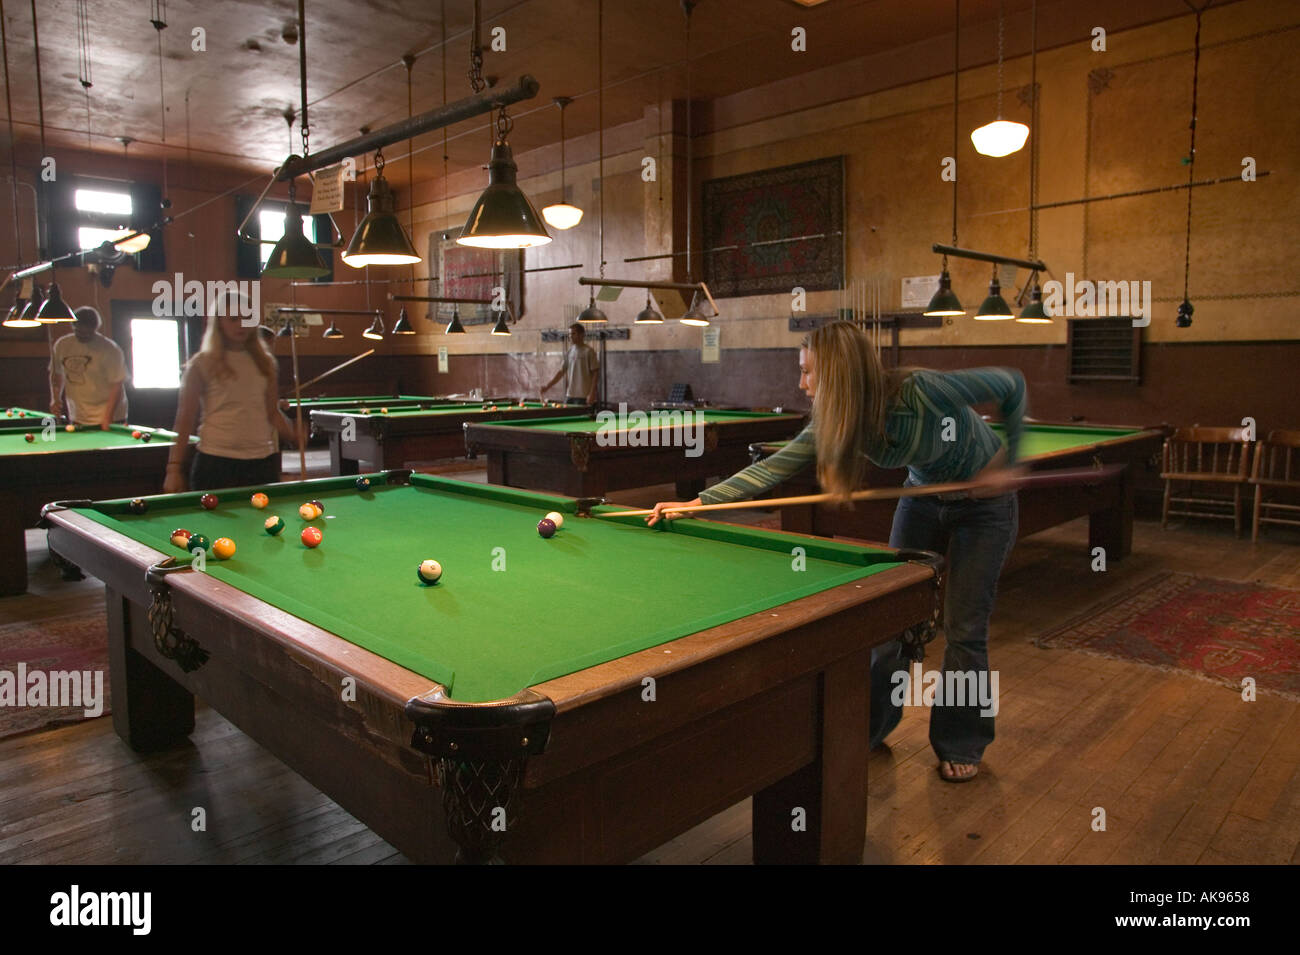 Young Women Playing Pool On Vintage Pool Tables In The Billiards Room At  Olympic Club Hotel Centralia Washington NO RELEASE AV